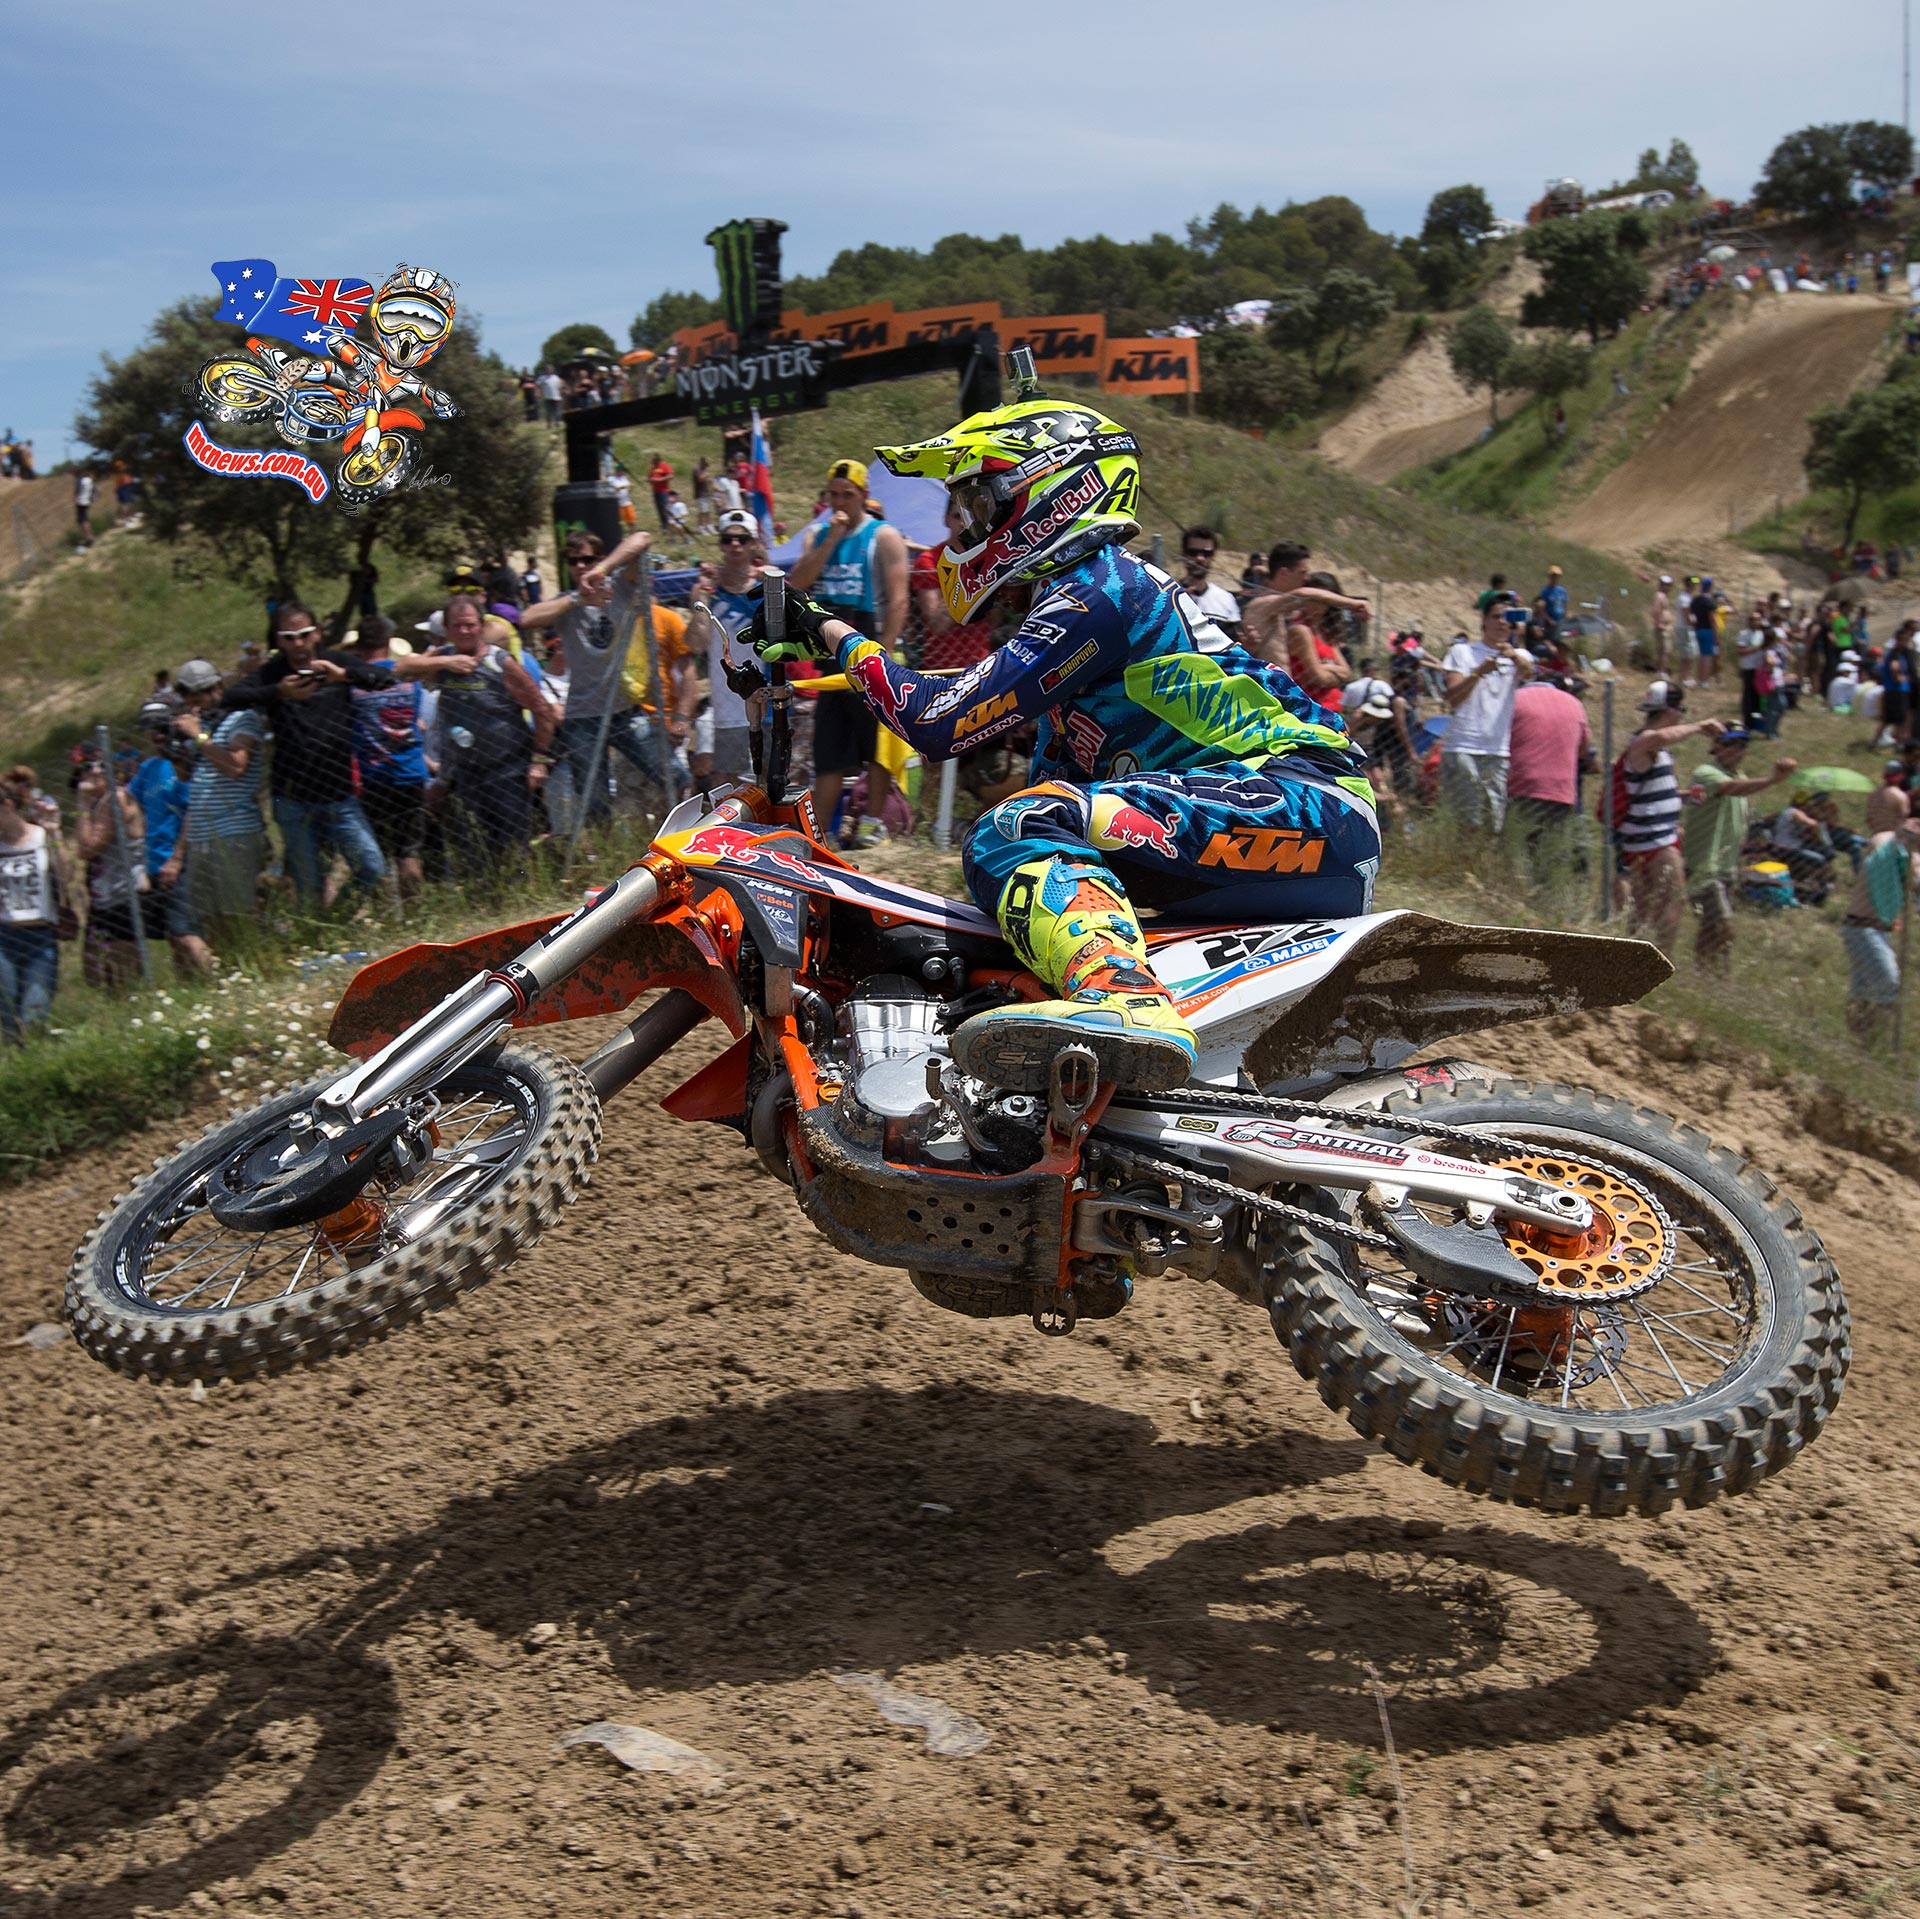 Red Bull KTM Factory Racing's Antonio Cairoli took his first MXGP overall victory of the season